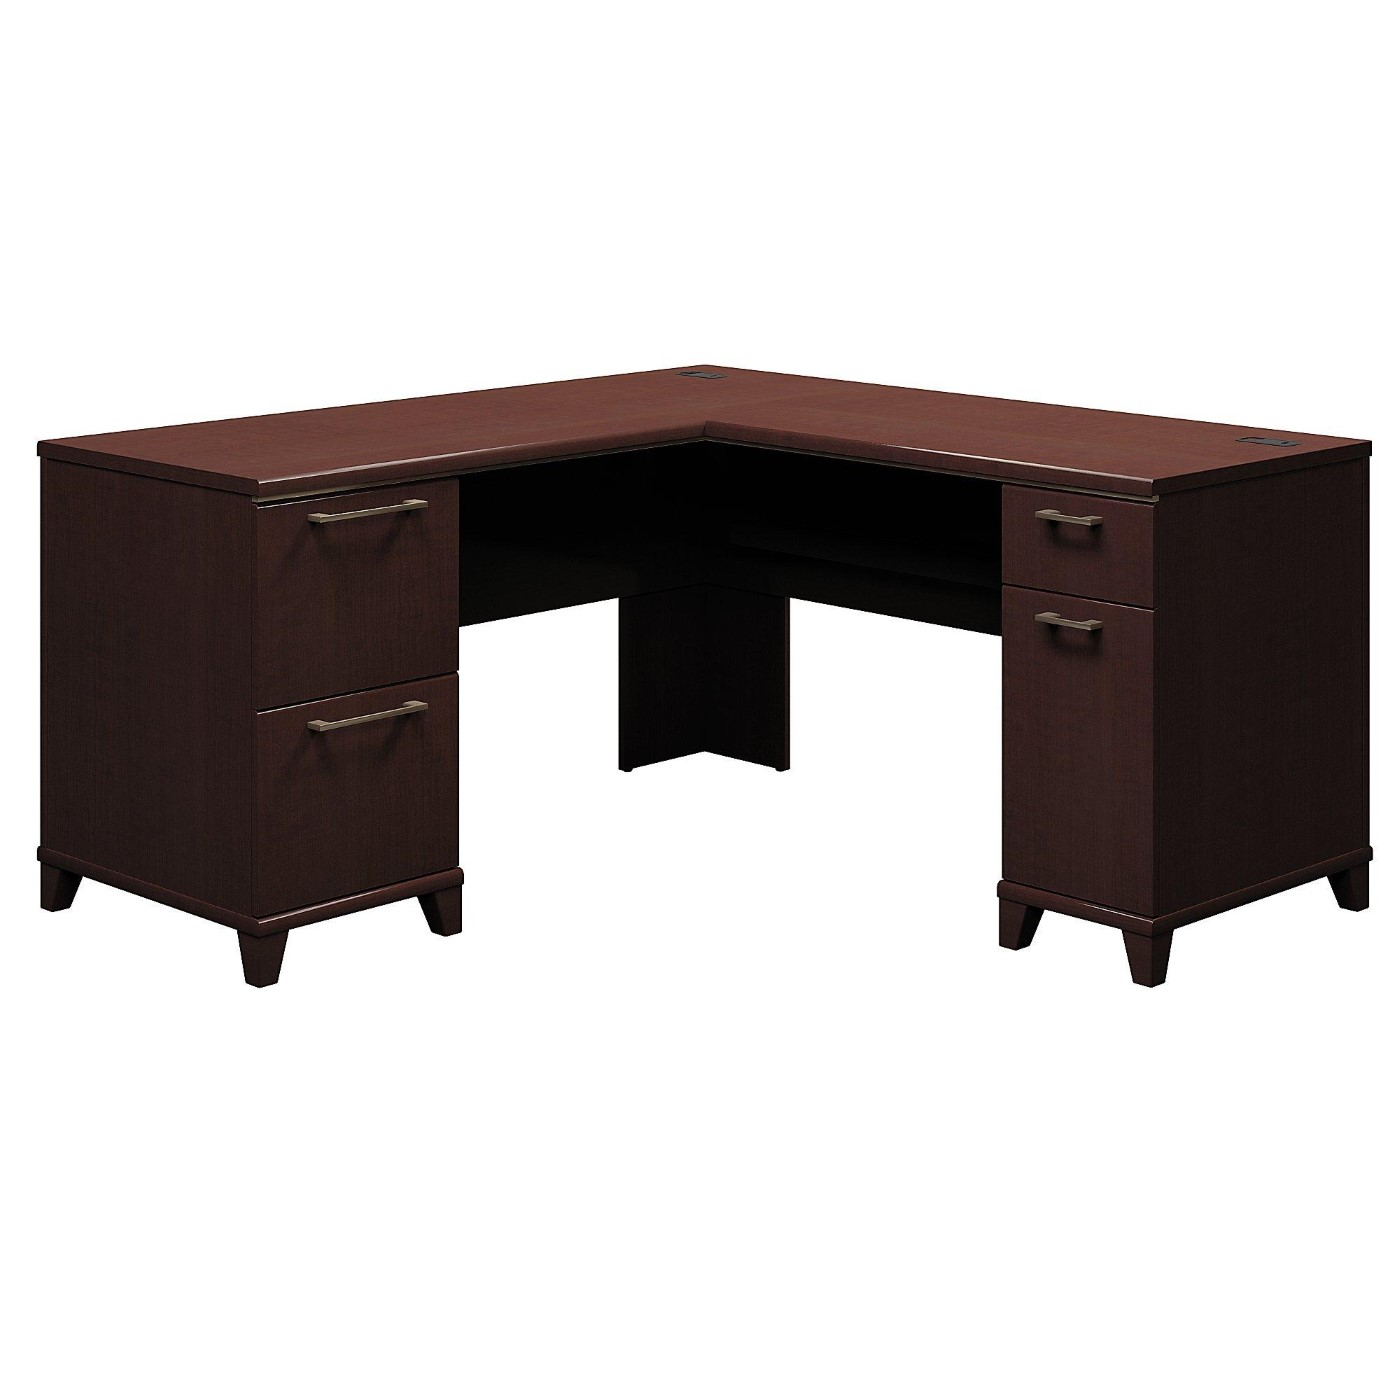 <font color=#c60><b>BUSH BUSINESS FURNITURE ENTERPRISE 60W X 60D L SHAPED DESK. FREE SHIPPING</font></b></font></b>